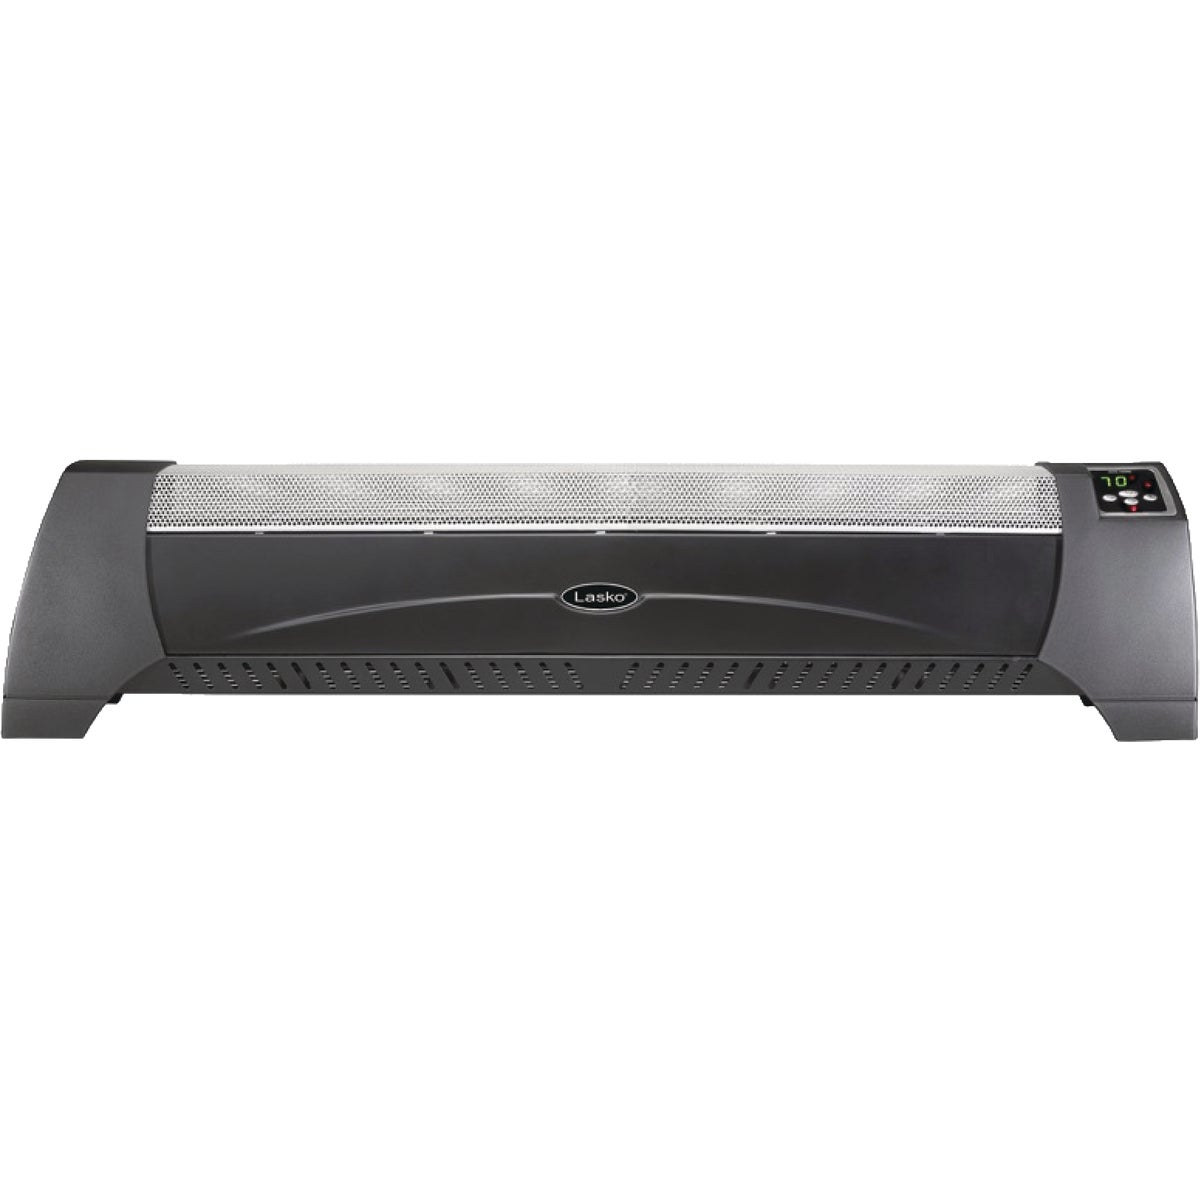 BASEBOARD HEATER - HZ519 by Kaz Home Environment